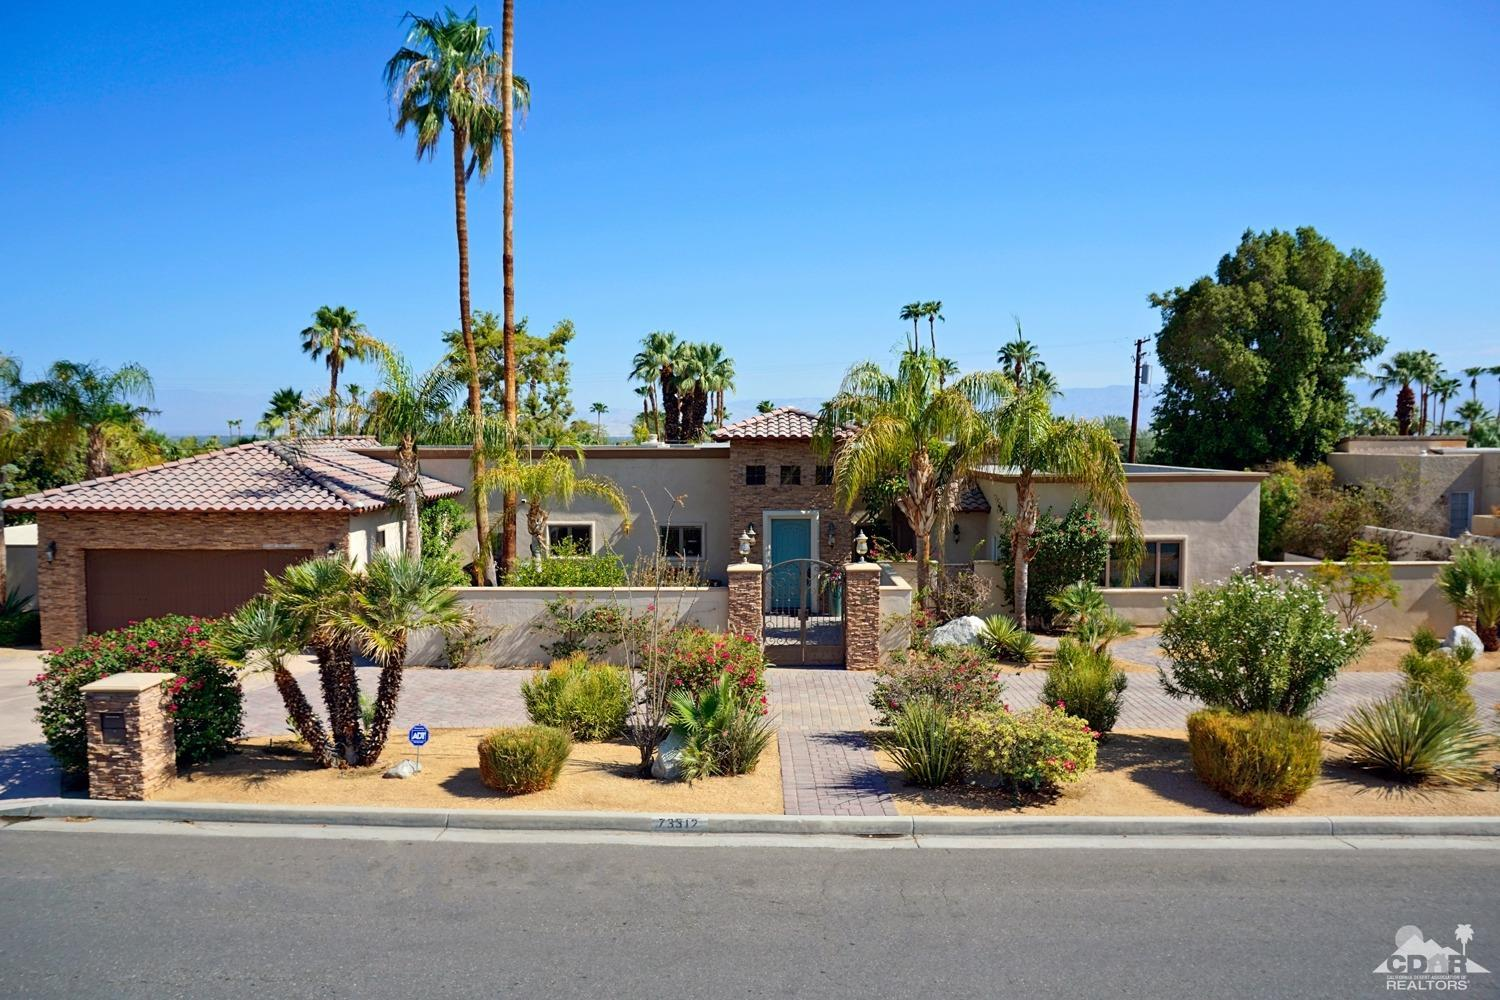 73312 Ironwood Street, Palm Desert, CA 92260